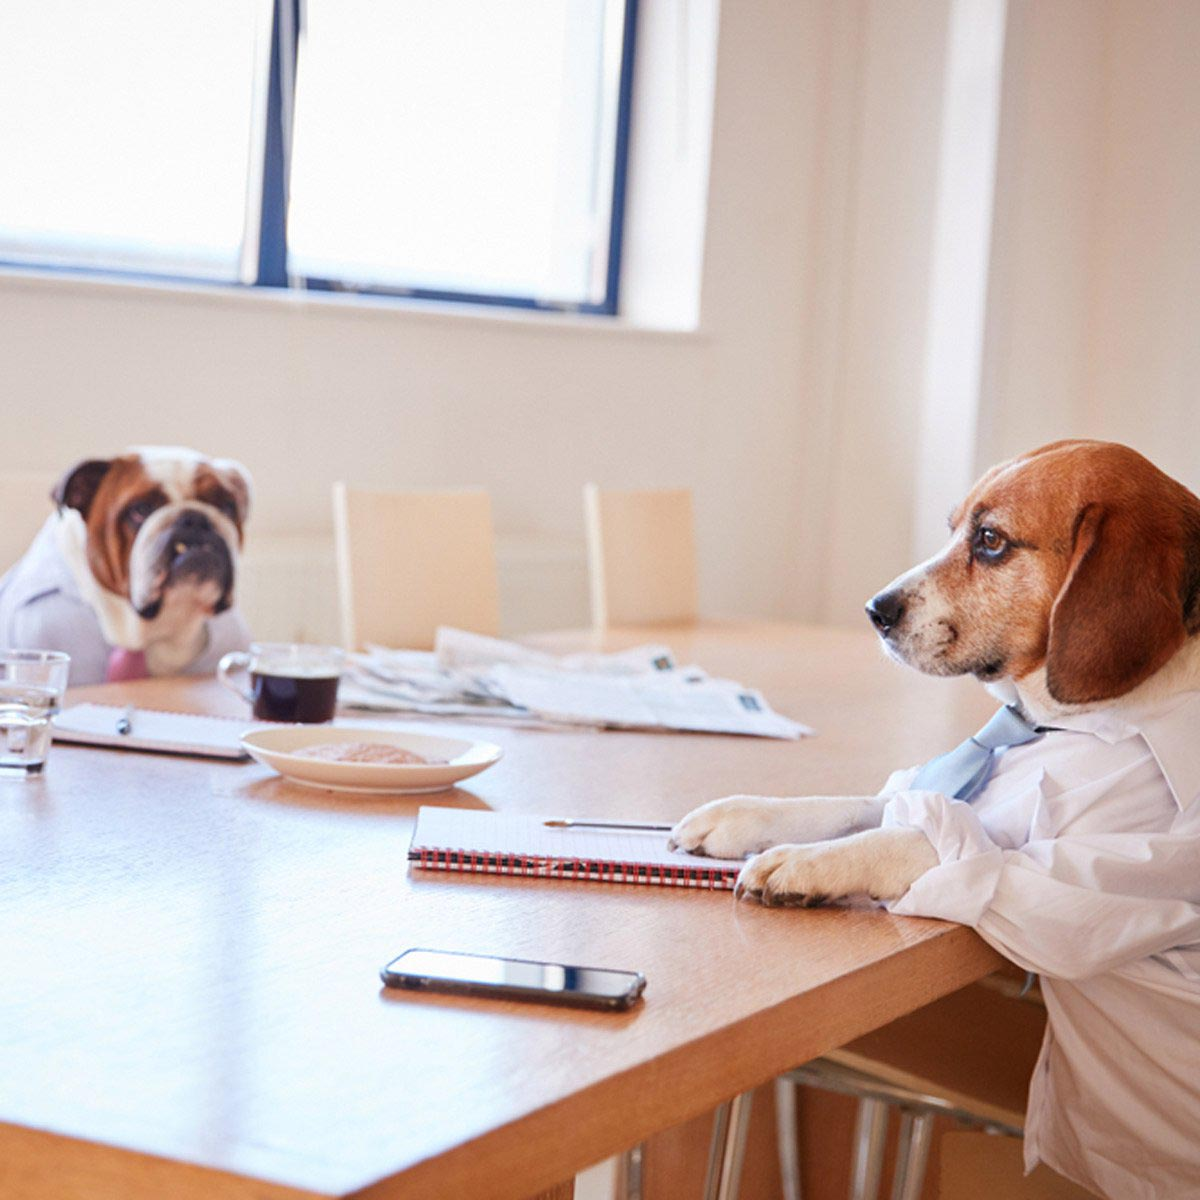 dogs-in-business-clothes